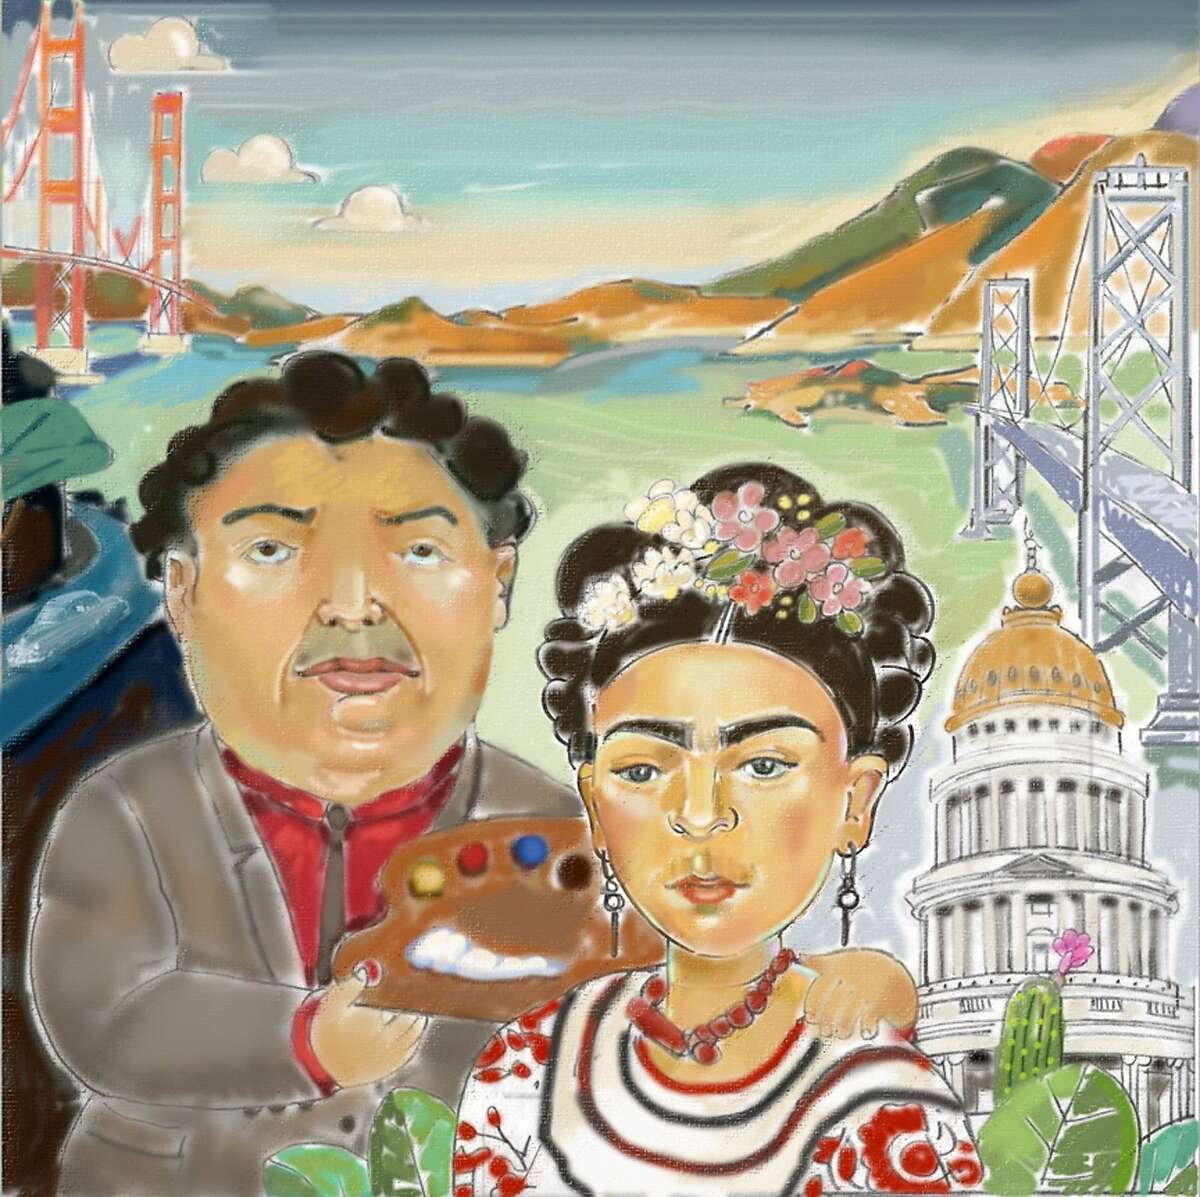 ITALIAN STREET PAINTING MARIN RETURNS WITH NEW THEMED POP-UP GALLERY: CALIFORNIA IN THE 1940's Sara Mordecai that is going to be recreated for this year's event, and it has ties to San Francisco - draft is attached. The theme for this year is California in the 1940's. Sara will created a street painting that commemorates the re-marriage of Frida Kahlo and Diego Rivera at San Francisco City Hall in 1940, and features many San Francisco landmarks. In 1940, Diego Rivera came to San Francisco to paint a large mural for the Golden Gate International Exposition on Treasure Island. While in San Francisco, Frida Kahlo and Diego Rivera re-married. Interesting enough, the mural Diego Rivera painted is now at City College. A vibrant visual history of the decade will adorn the streets of San Rafael - Saturday and Sunday, June 28 & 29 When: June 28 and 29 (Saturday, 10am - 9pm; Sunday, 10am - 6pm) Where: A Street (between 4th and 5th) in downtown San Rafael, CA. What: Italian Street Painting Marin (ISPM) returns to San Rafael with their. Following the success of the return of Italian Street Painting Marin in 2013 after a two-year hiatus, the decision was made to hold the signature ISPM event every other year, and in the alternating years to hold the more intimate Pop-Up Gallery event. This year's Pop-Up Gallery will feature Madonnari exclusively from California (and one from Hawaii) creating 22 images, each in a 12'x12' square. These paintings will run the length of A Street, between 4th and 5th in front of the iconic Mission San Rafael Arcangel.